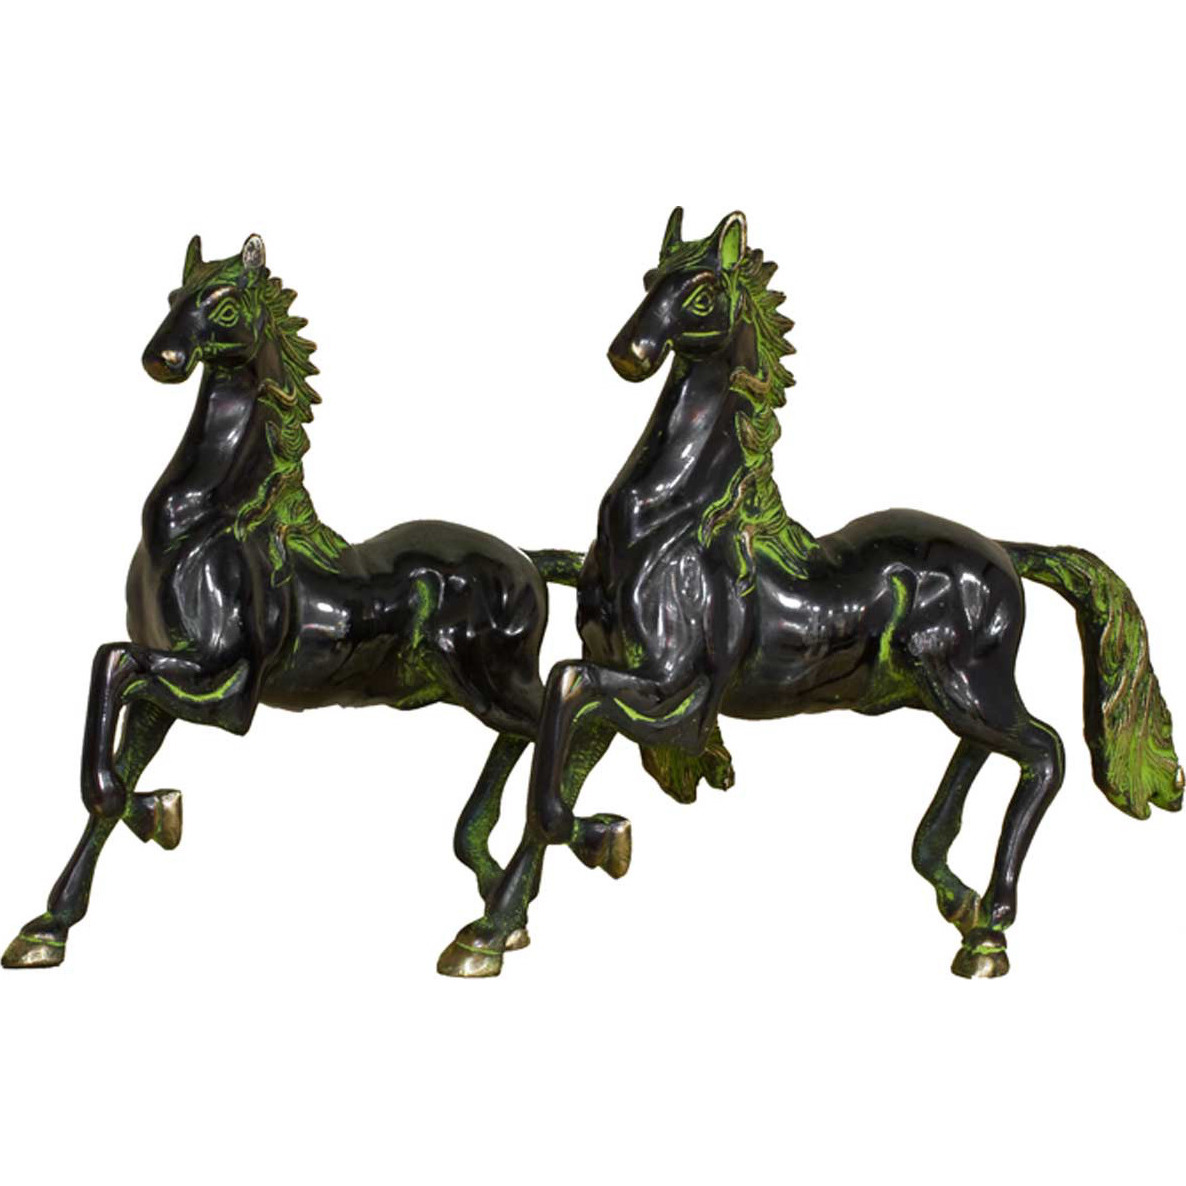 Brass Horse pair showpiece statue hand carved figurine home dicor 10